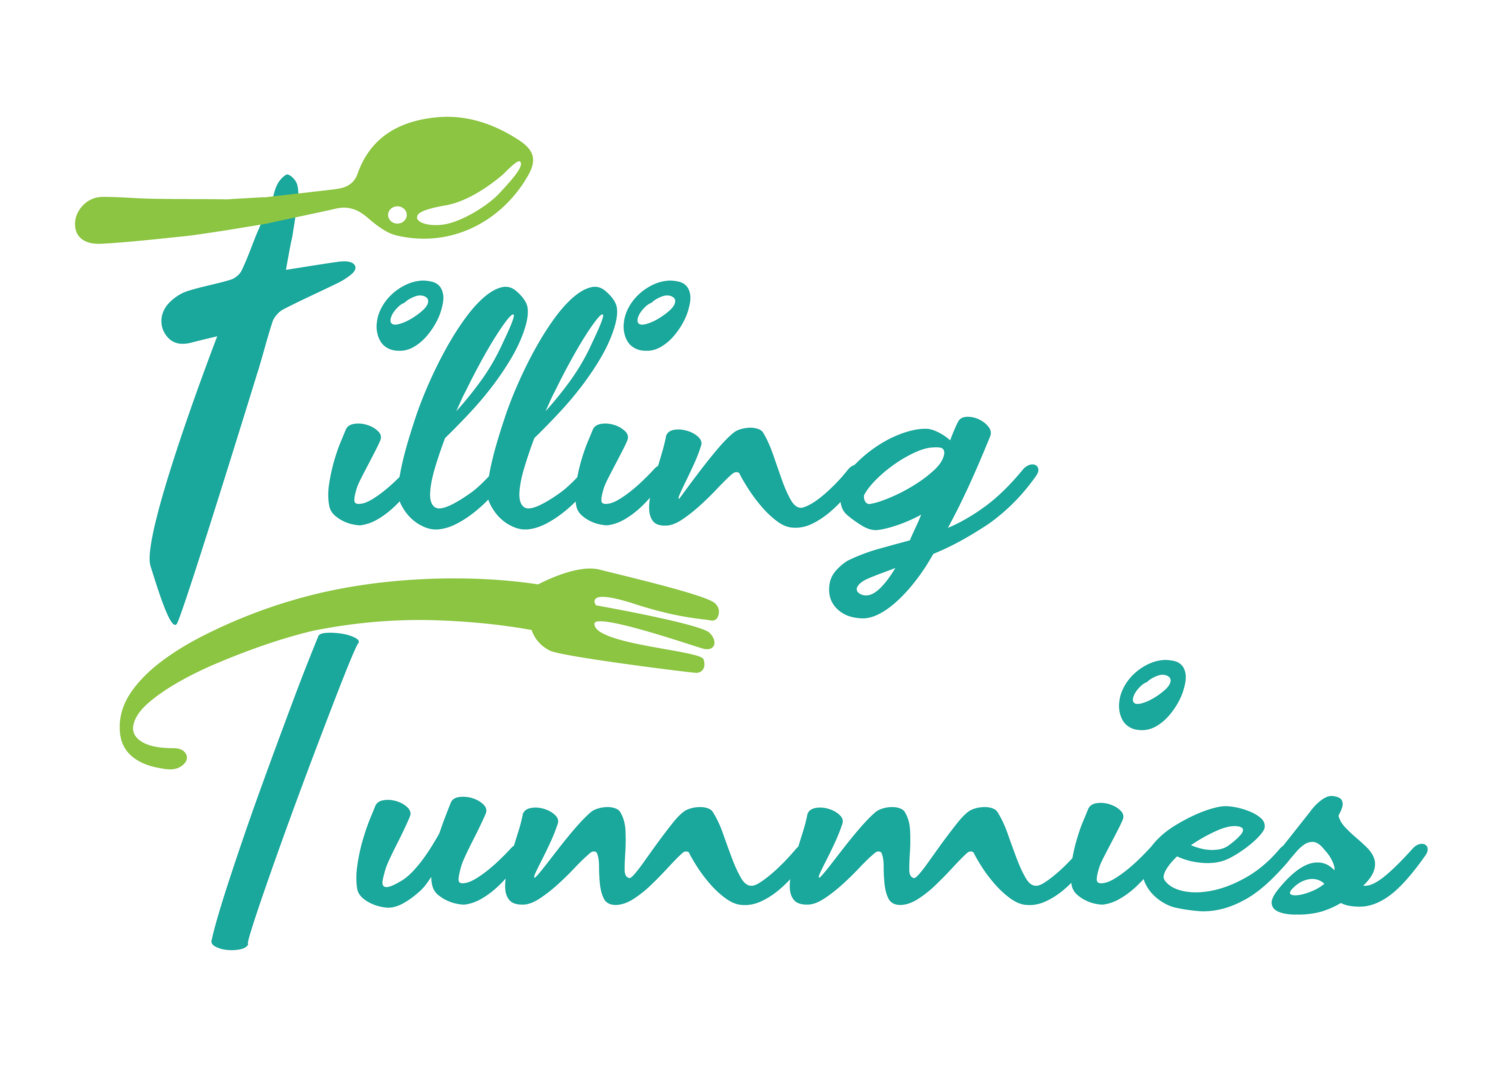 Filling Tummies & Community Development 501(c)3